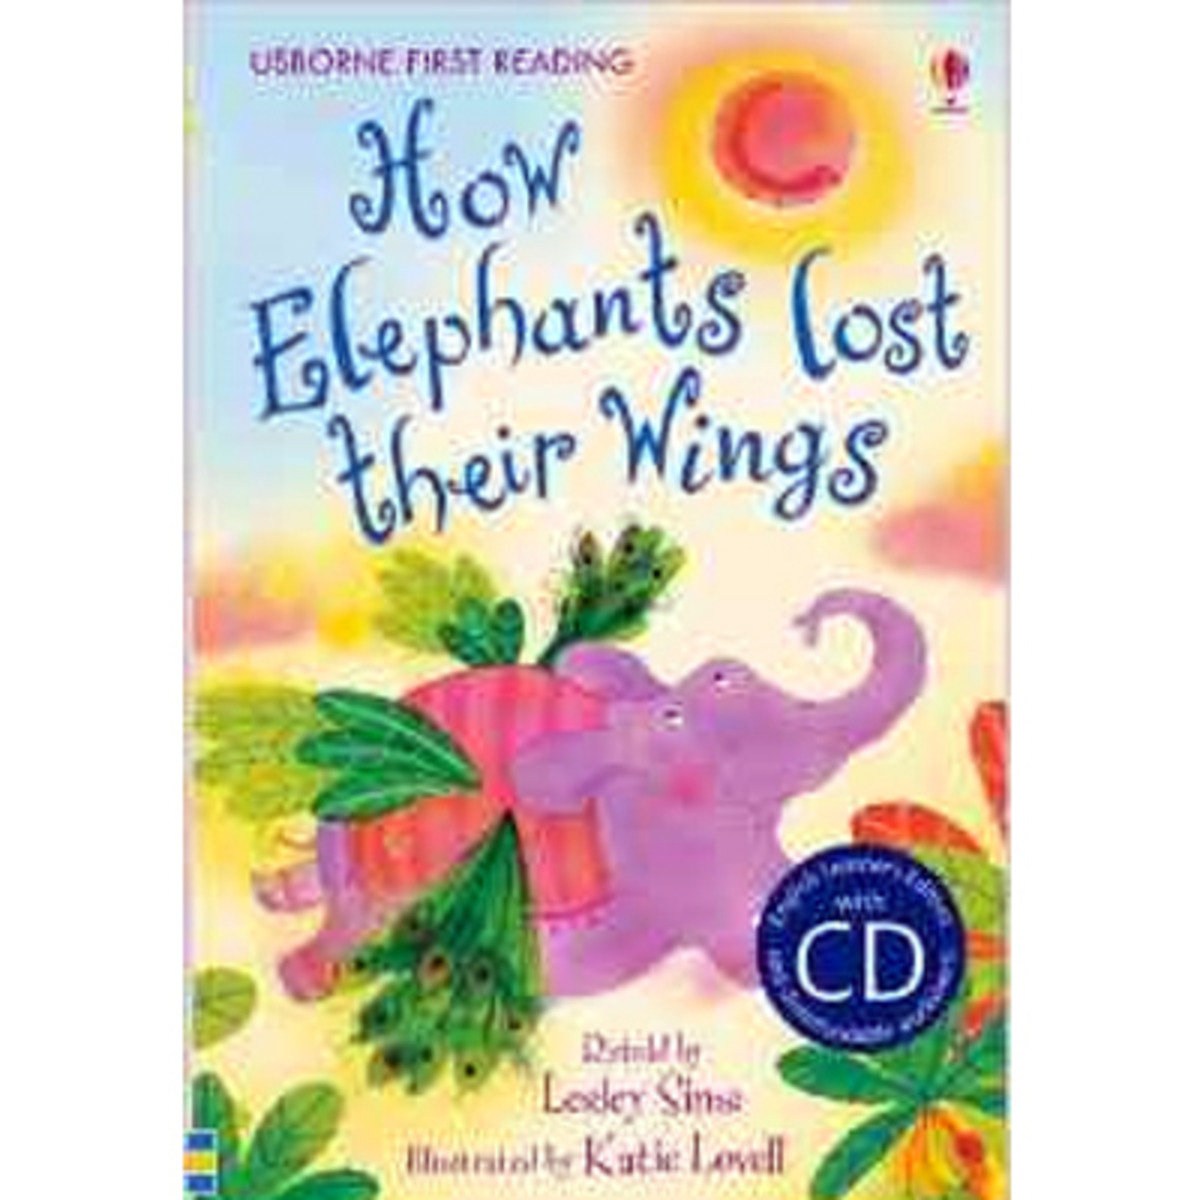 How Elephants Lost Their Wings-First Reading with CD